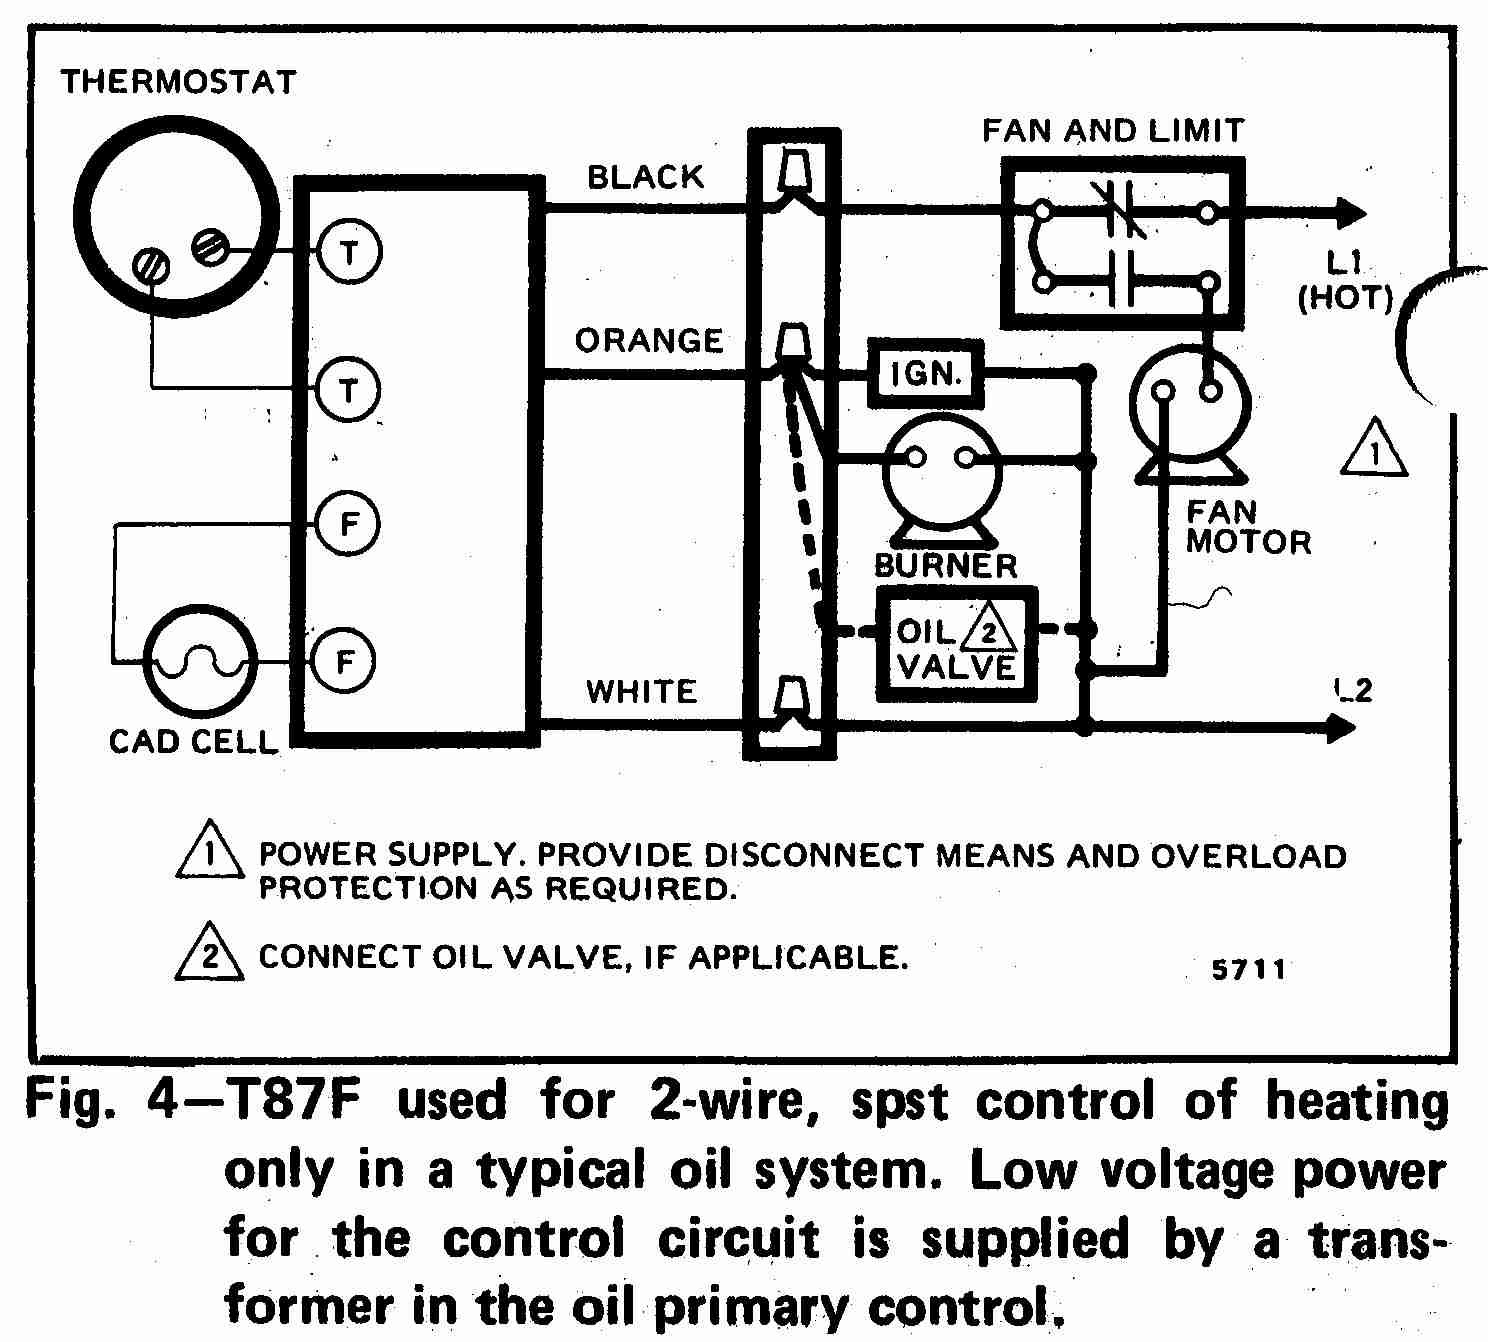 Wiring Diagram Goodman Electric Furnace Save Manufacturing Diagrams - Goodman Electric Furnace Wiring Diagram